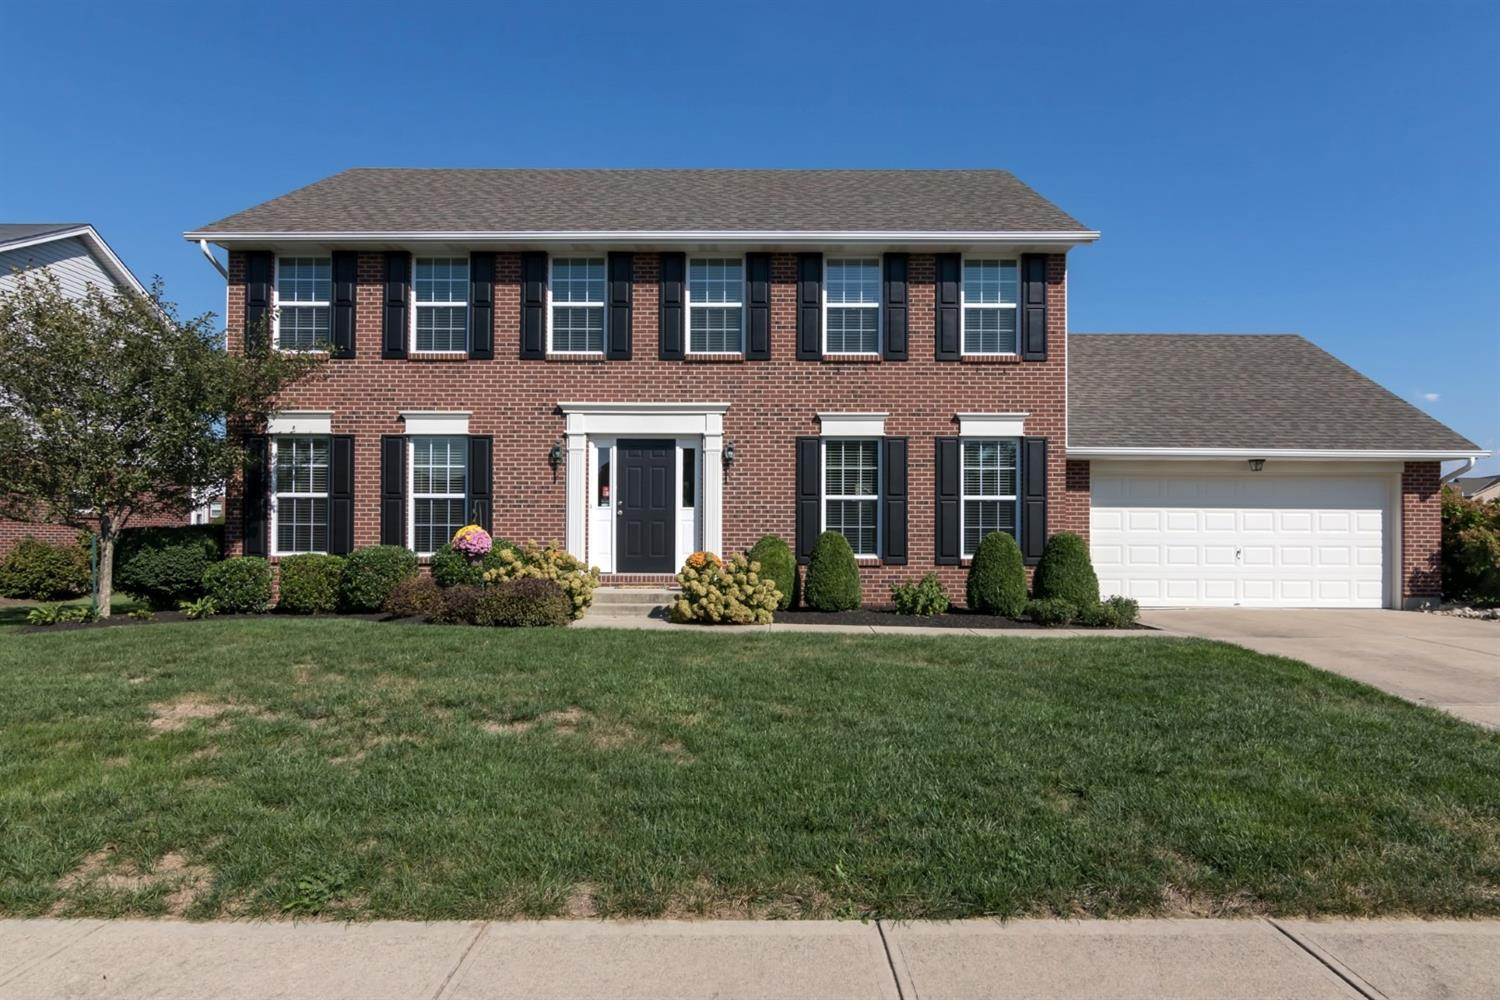 Property for sale at 7840 Rock Port Way, West Chester,  OH 45069